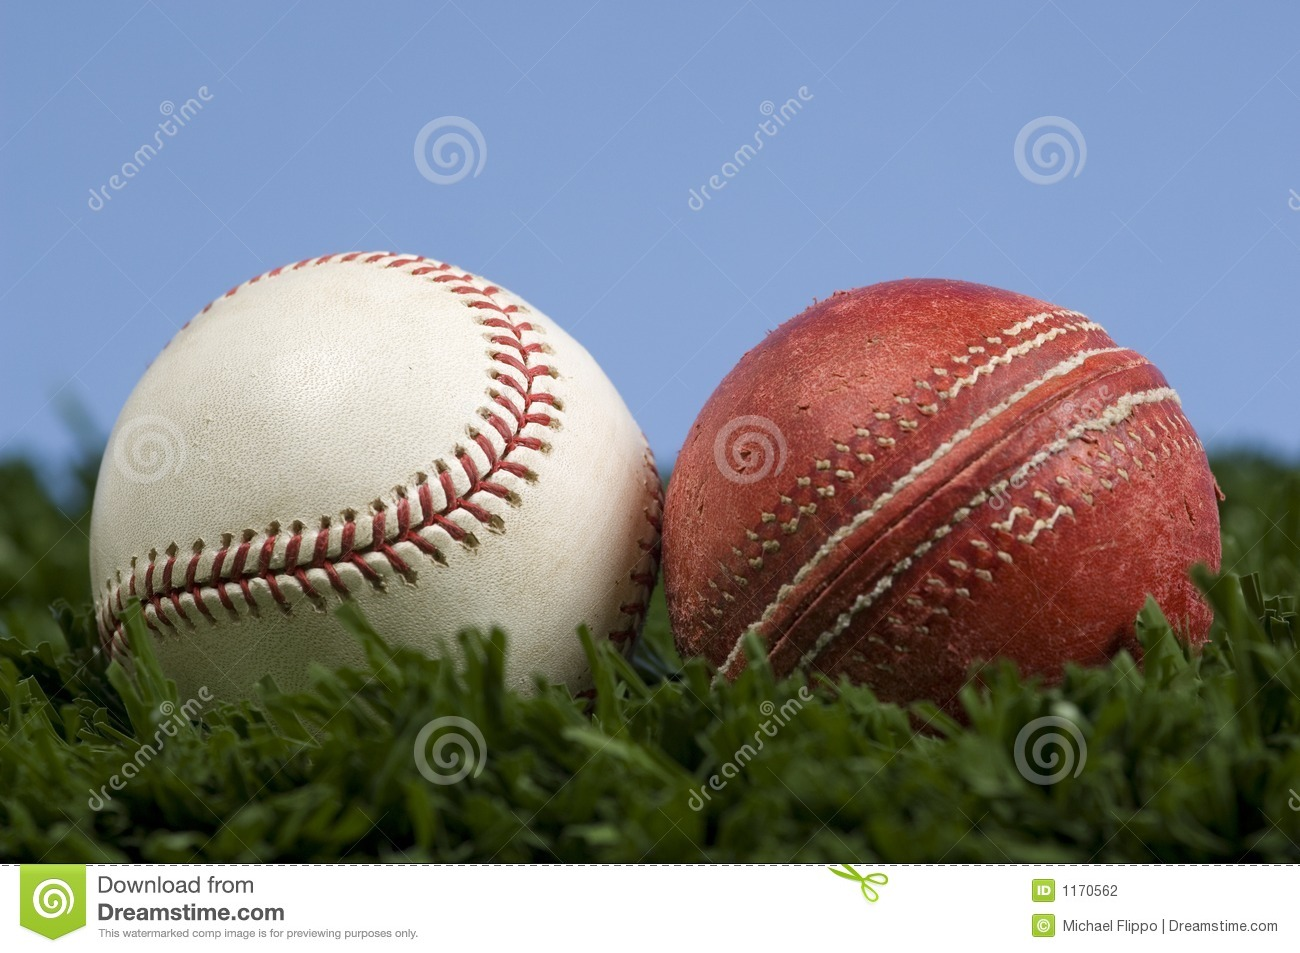 how to choose a cricket ball